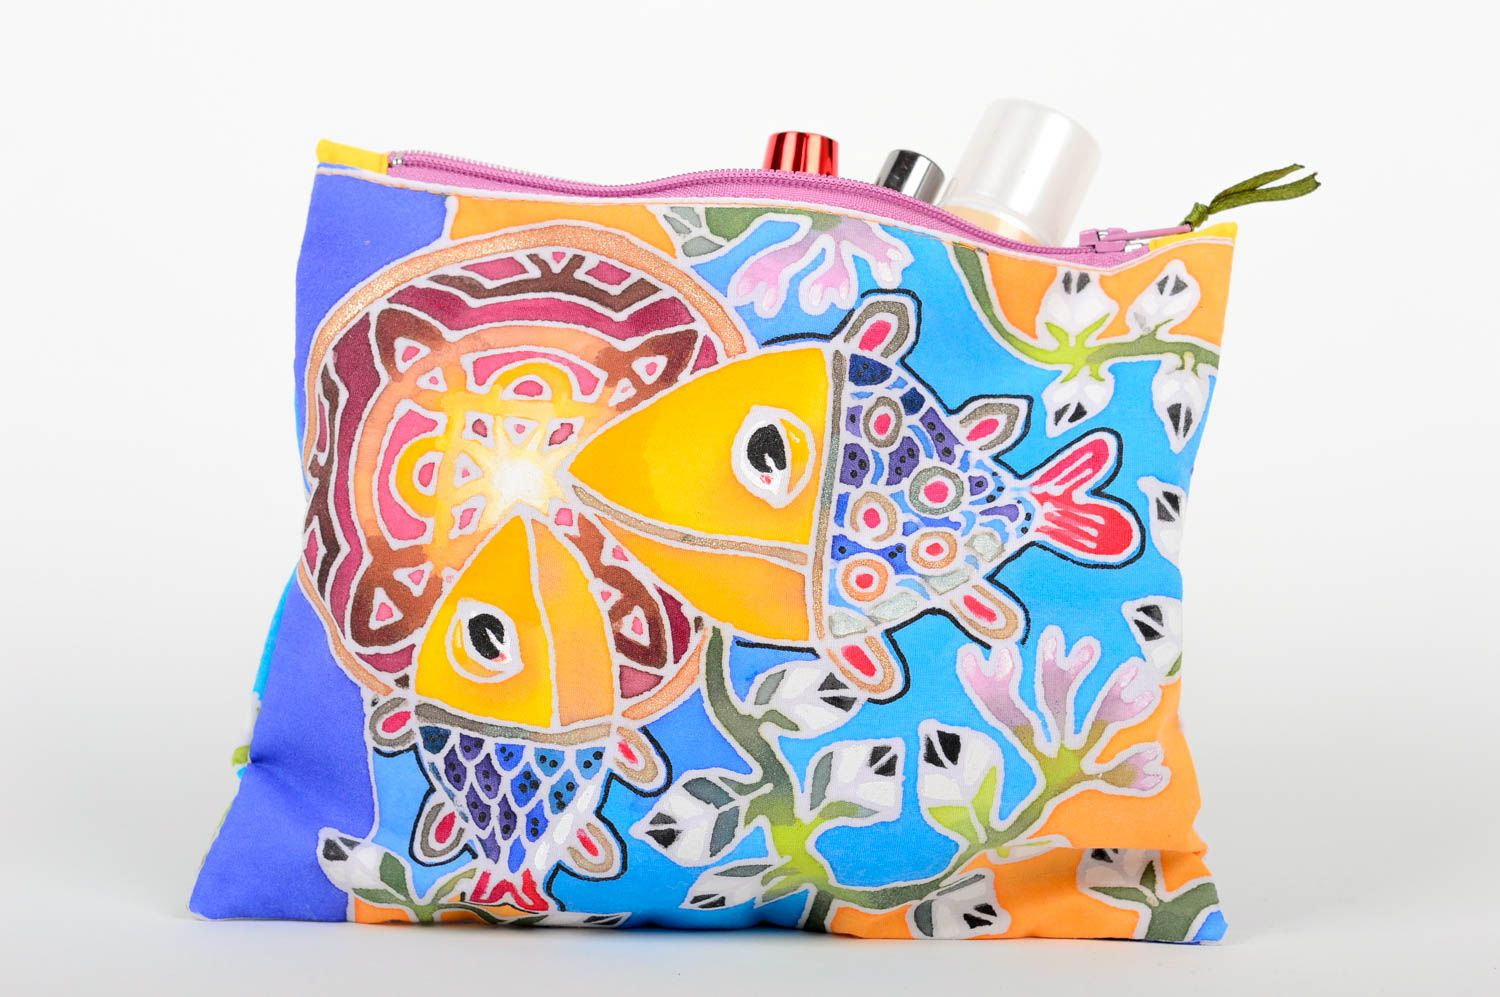 Cosmetic bags makeup bags handmade train cases women bag case with painting photo 1